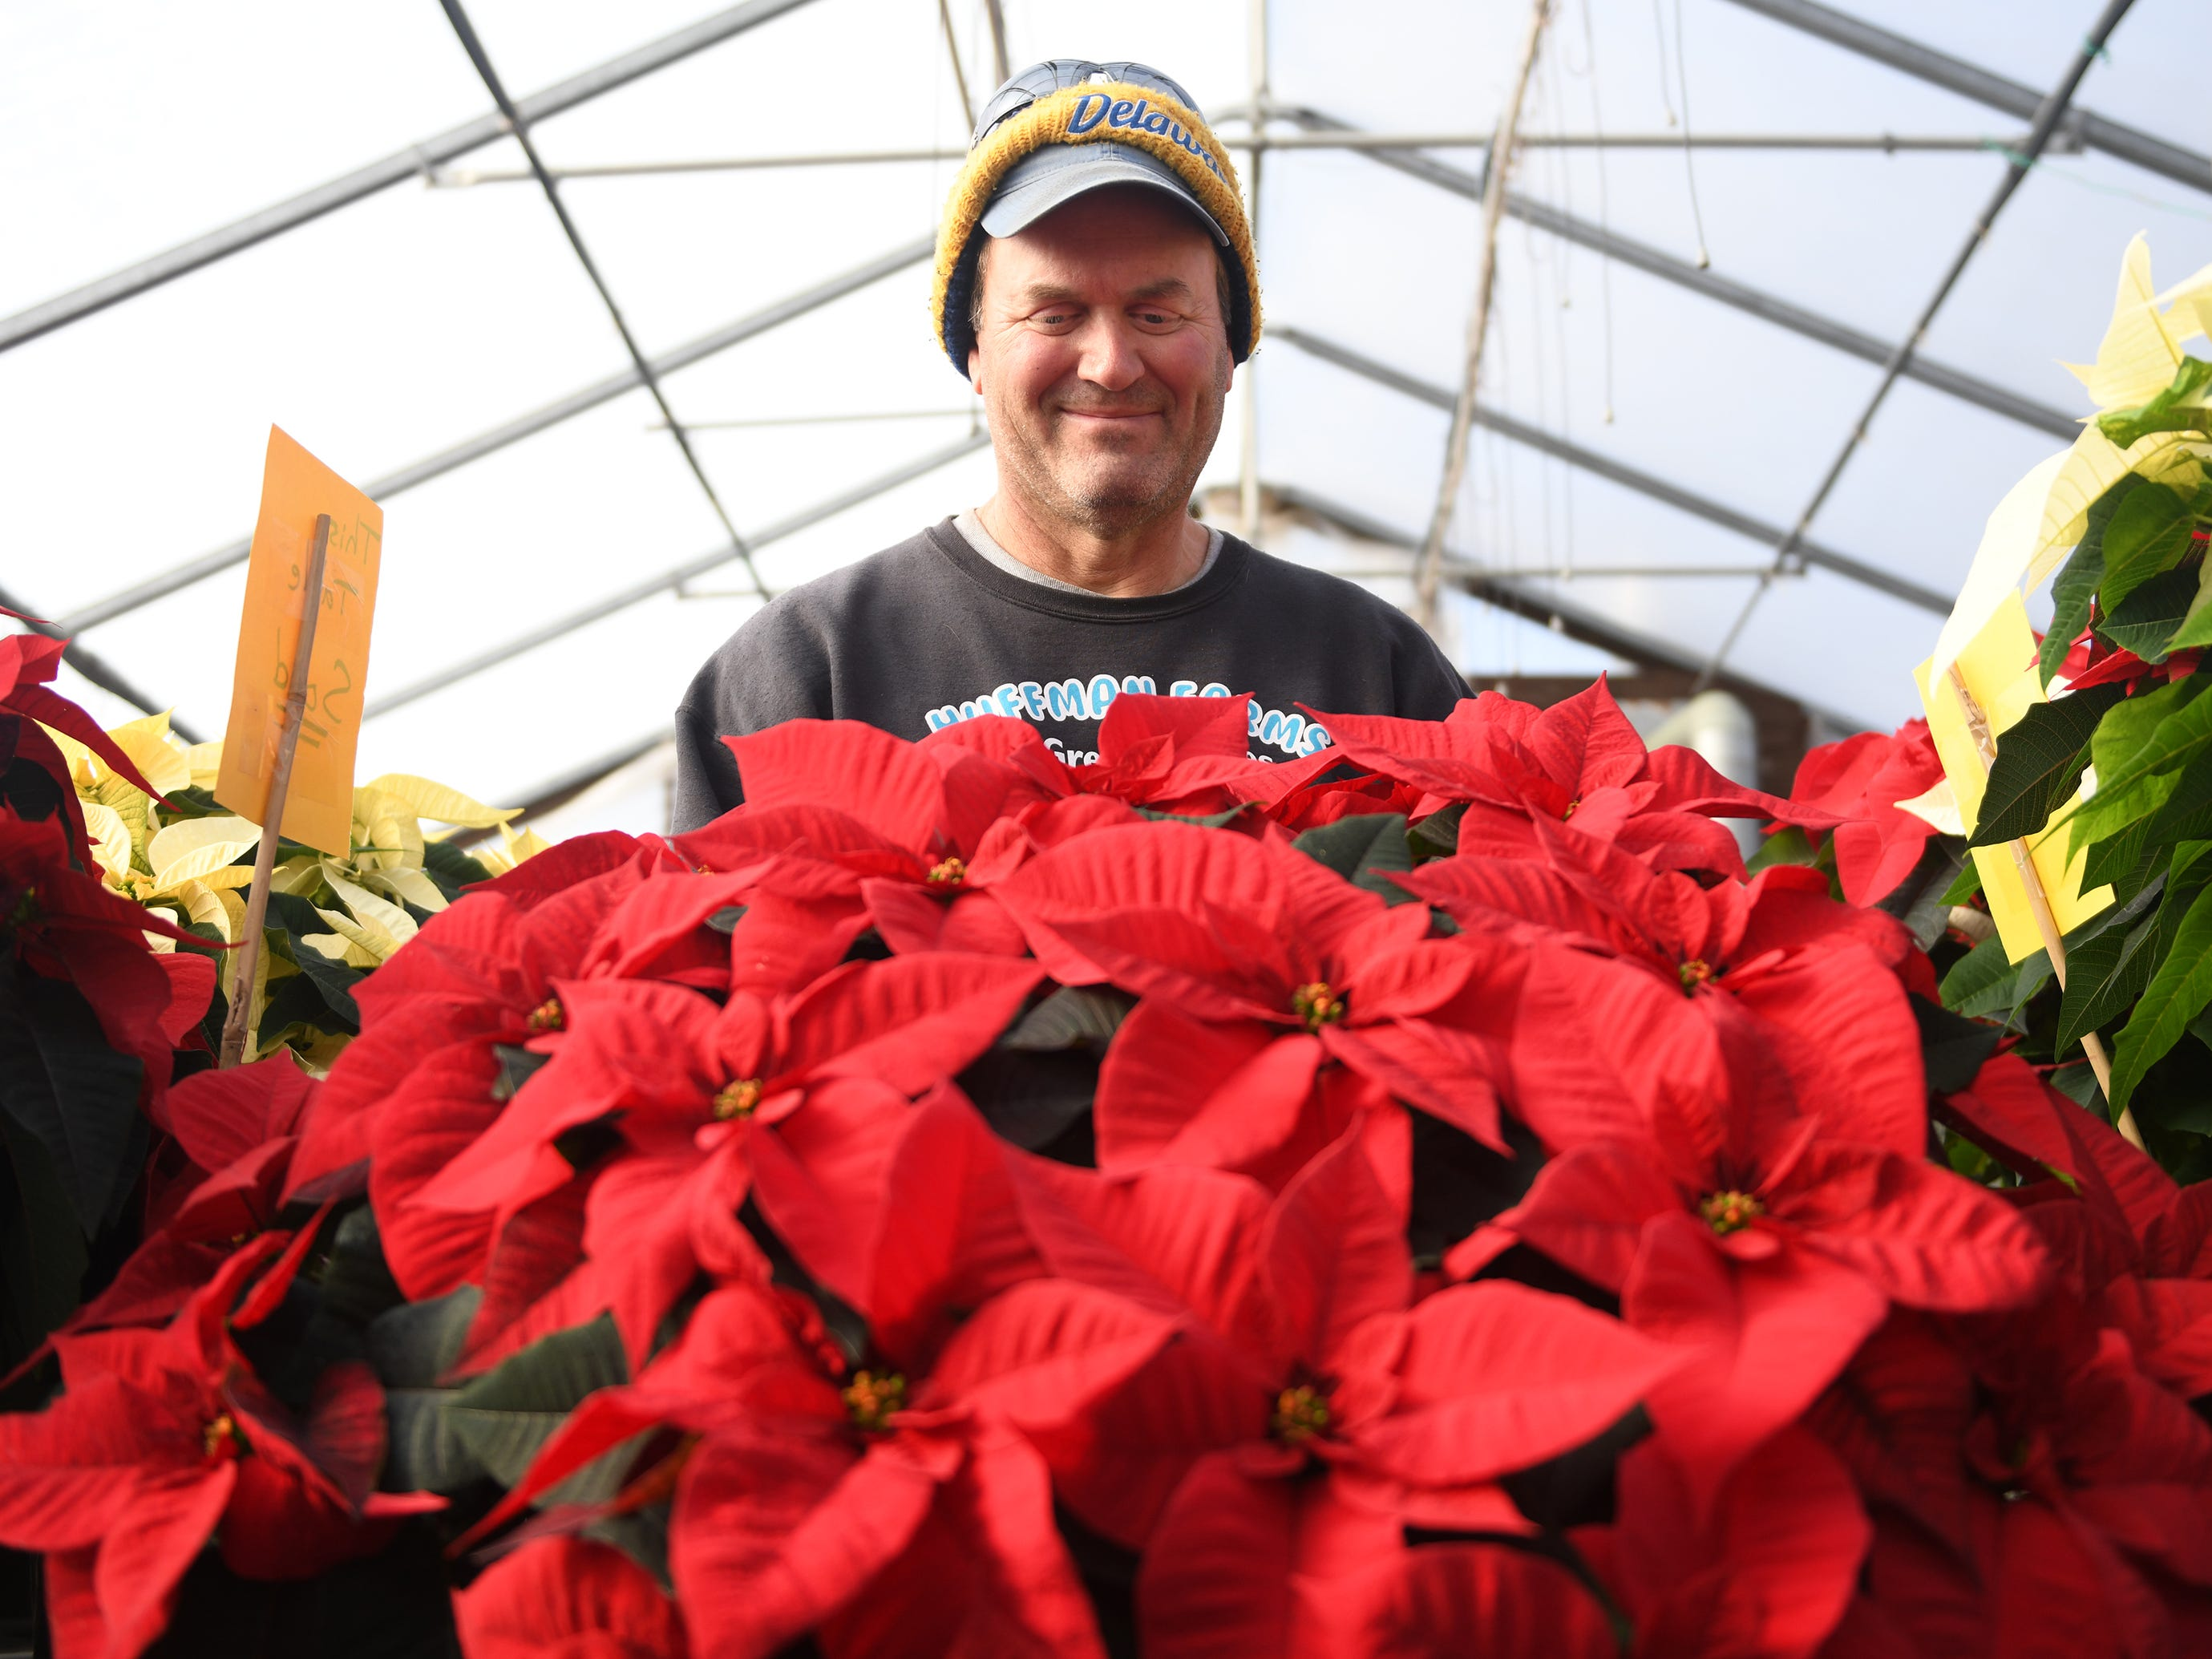 Tim Huffman holds a large poinsettia that his farm produces. Huffman Farms starts to grow poinsettias in July so they are ready for the Christmas season. The farm produces over 7,000 plants in several different colors including red, white, burgundy, pink and even some speckled varieties.